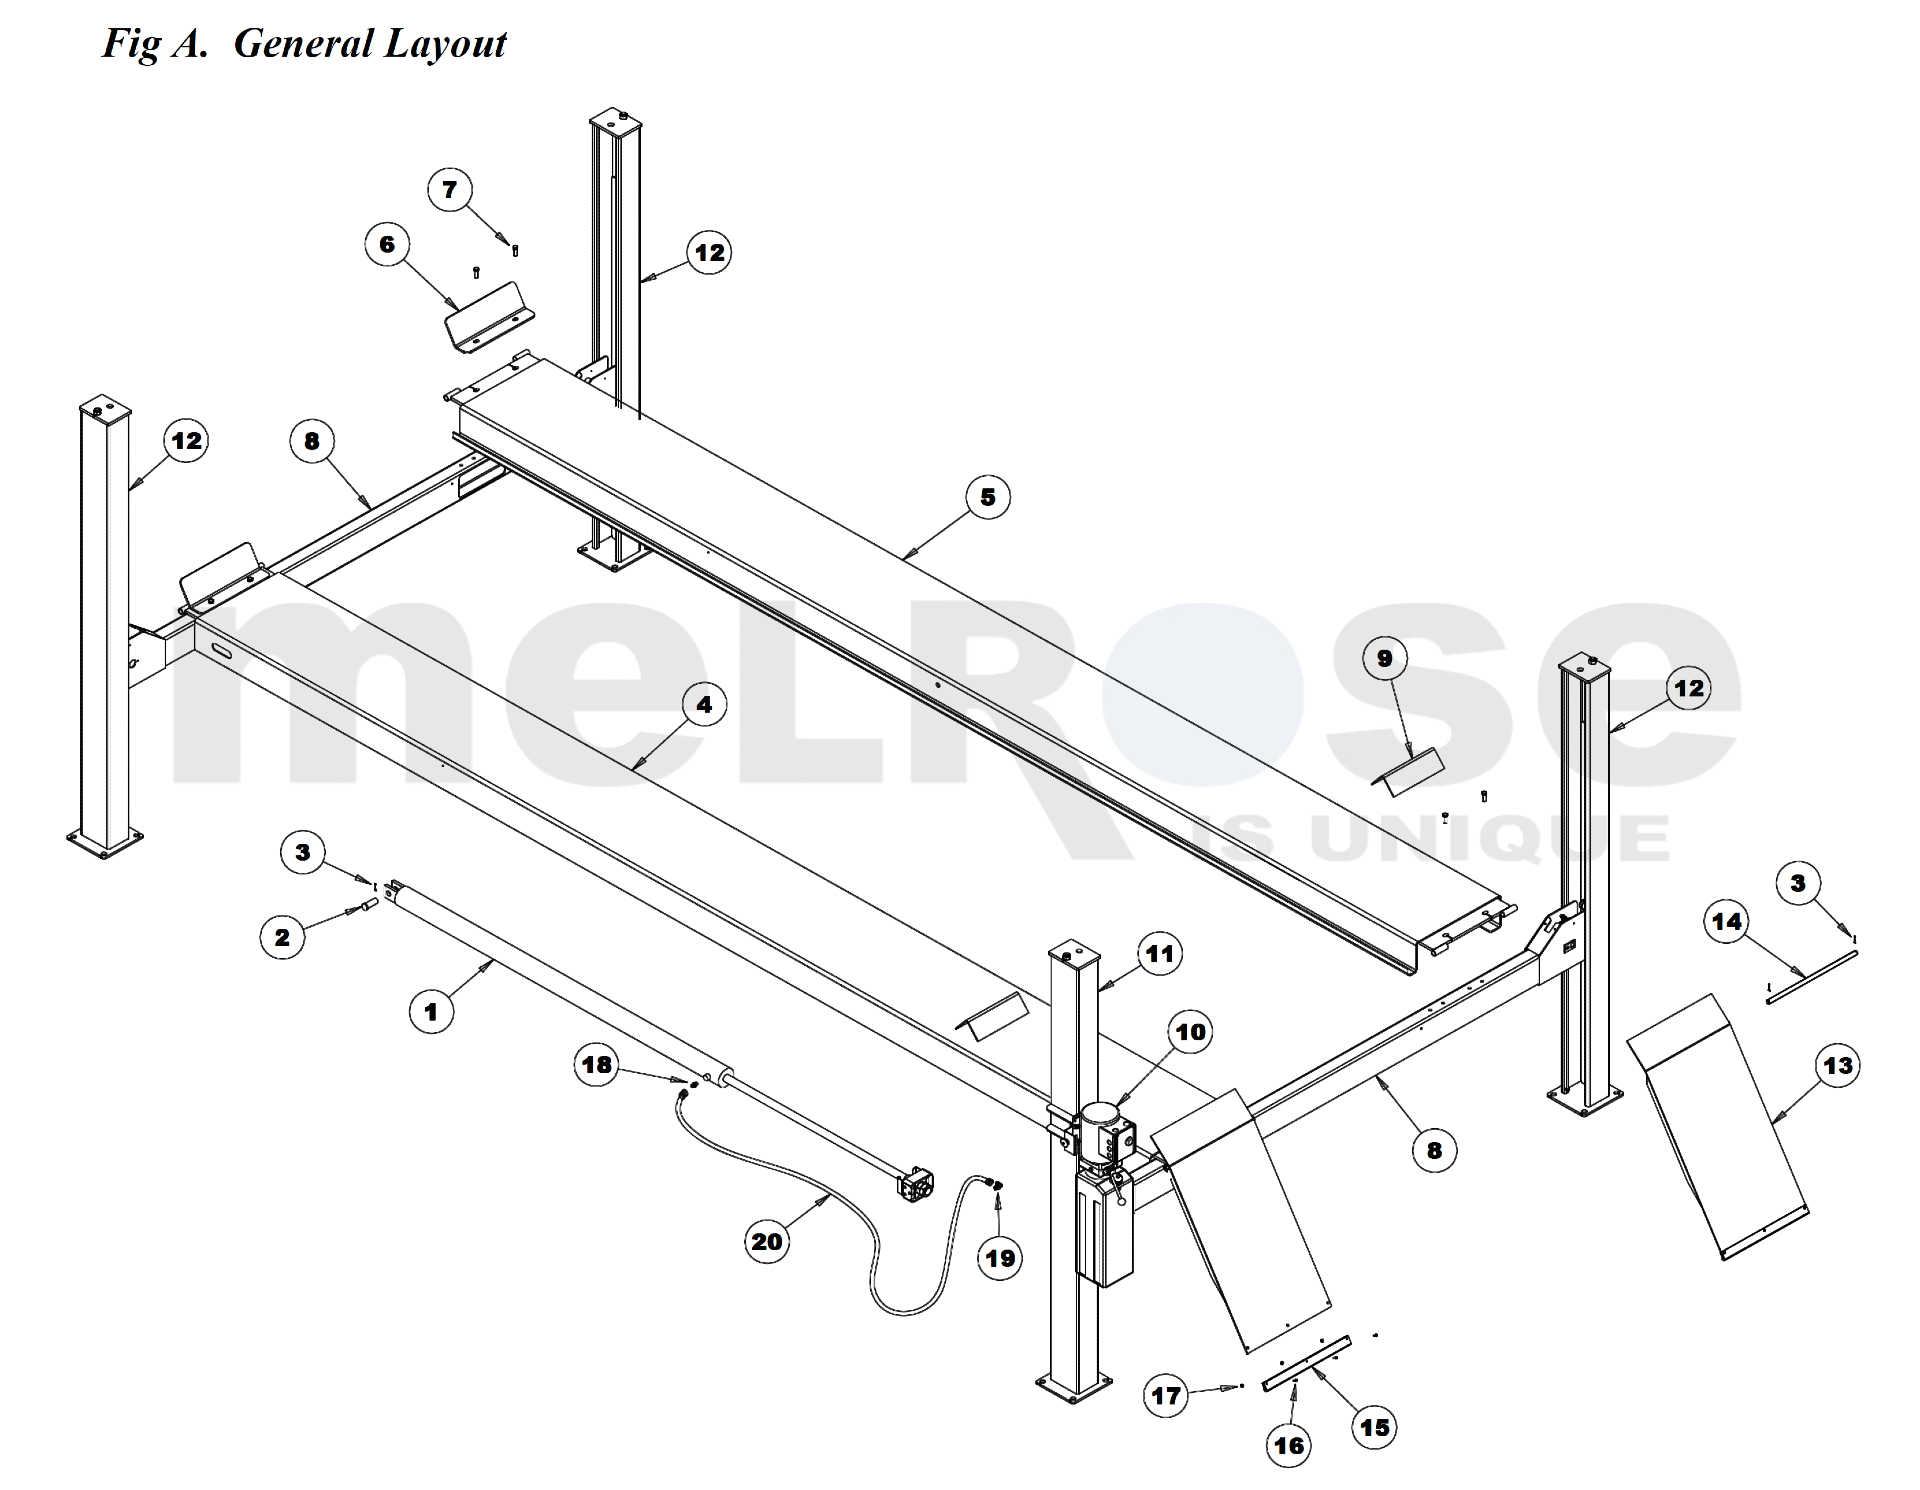 40000-closed-general-layout-diagram-marked.jpg